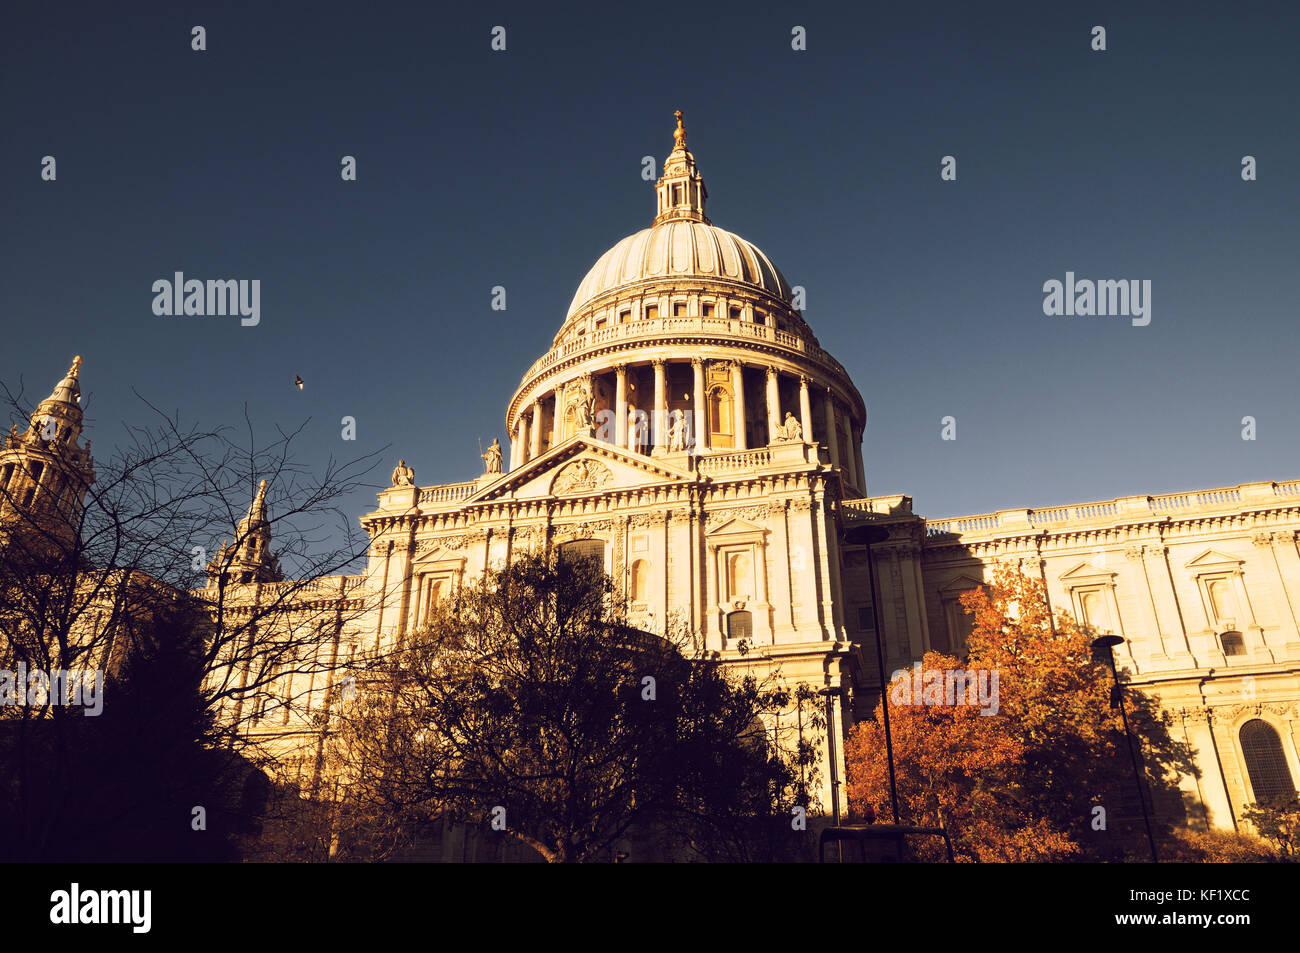 St Paul's Cathedral, London, UK.  Golden sunlight bathes the southern facade of Sir Christopher Wren's masterpiece - Stock Image